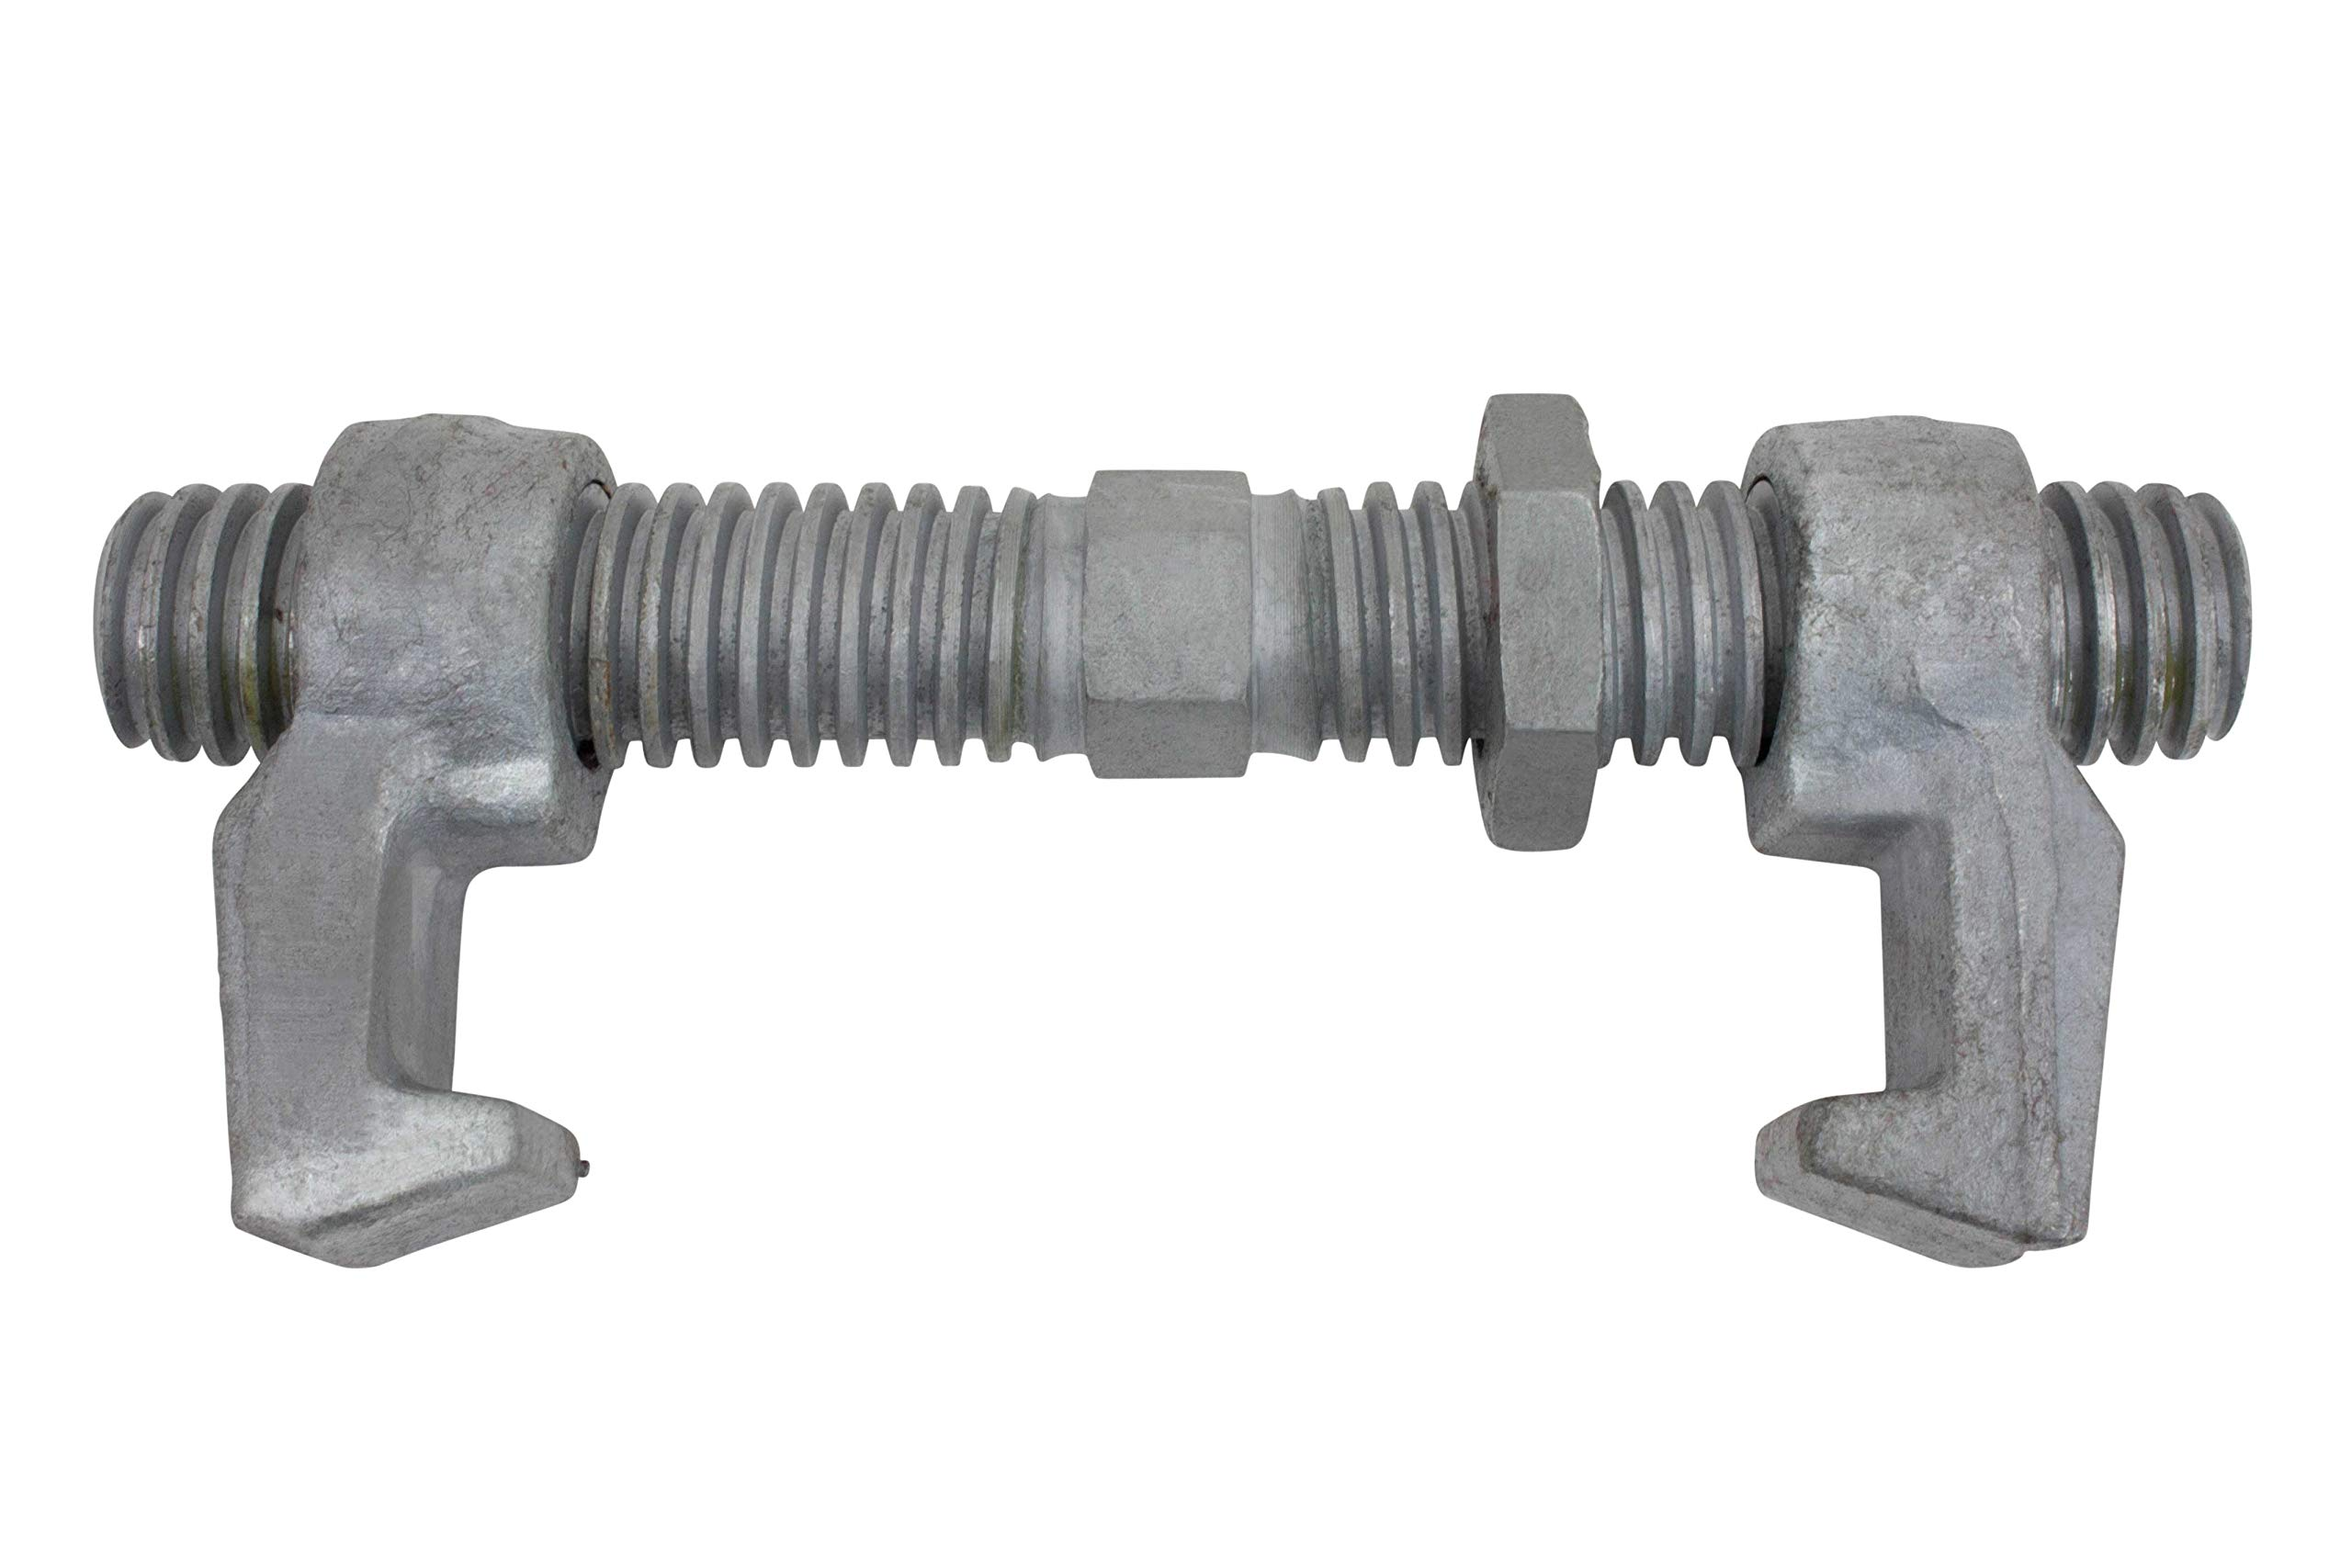 SEA Rail Shipping Container Bridge Fittings Clamp- 260 mm Clamp, Brand New (1 - Pack) by Mytee Products